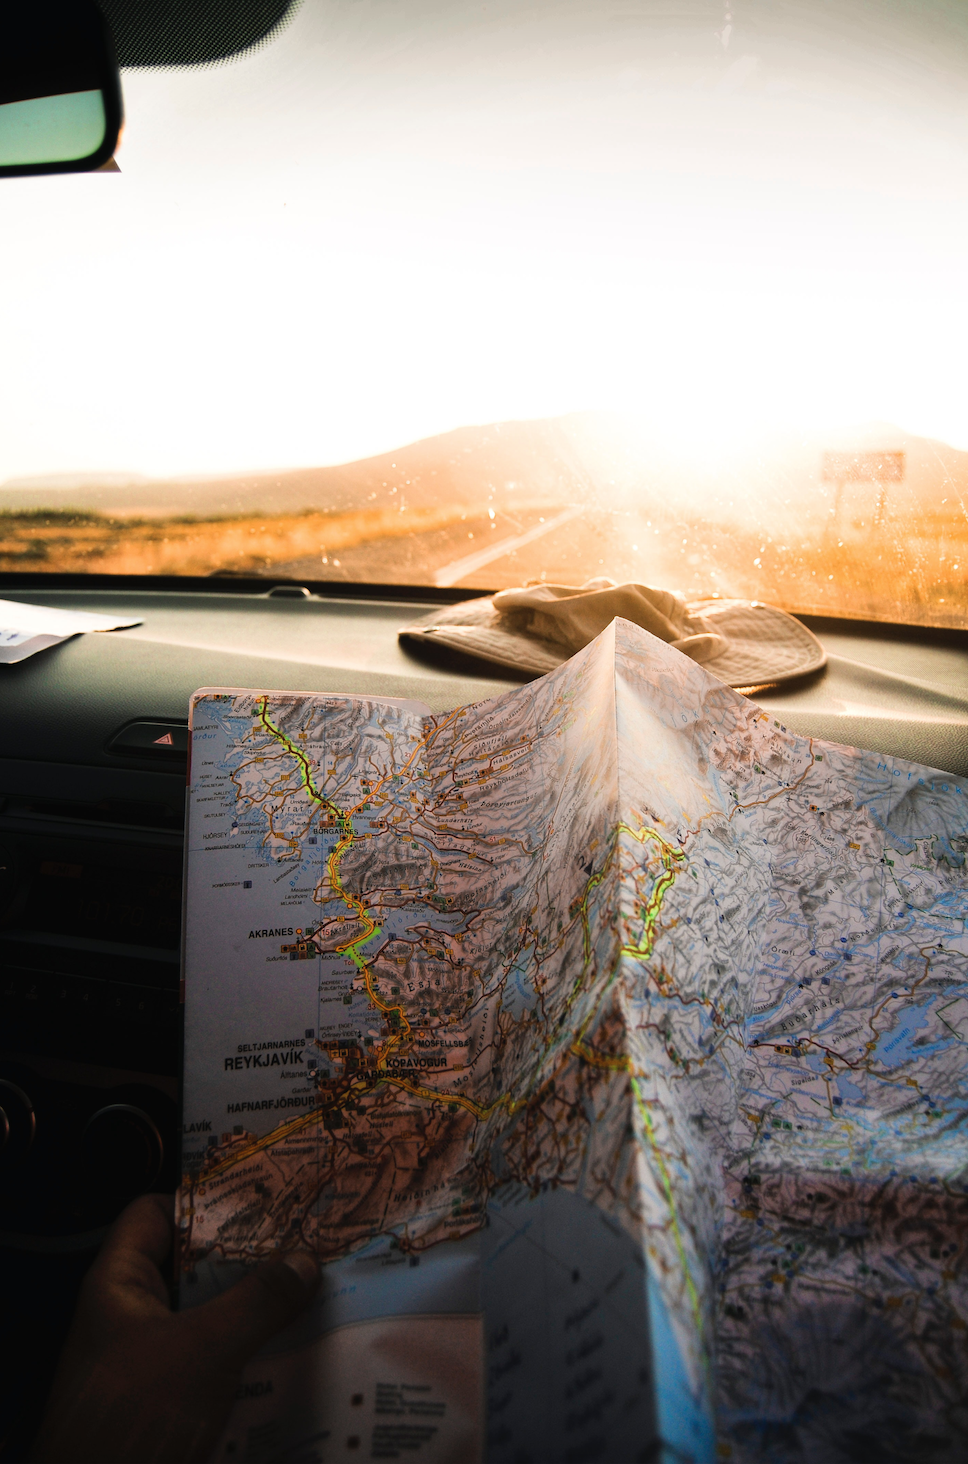 Learning is an Adventure. It helps to have a map.